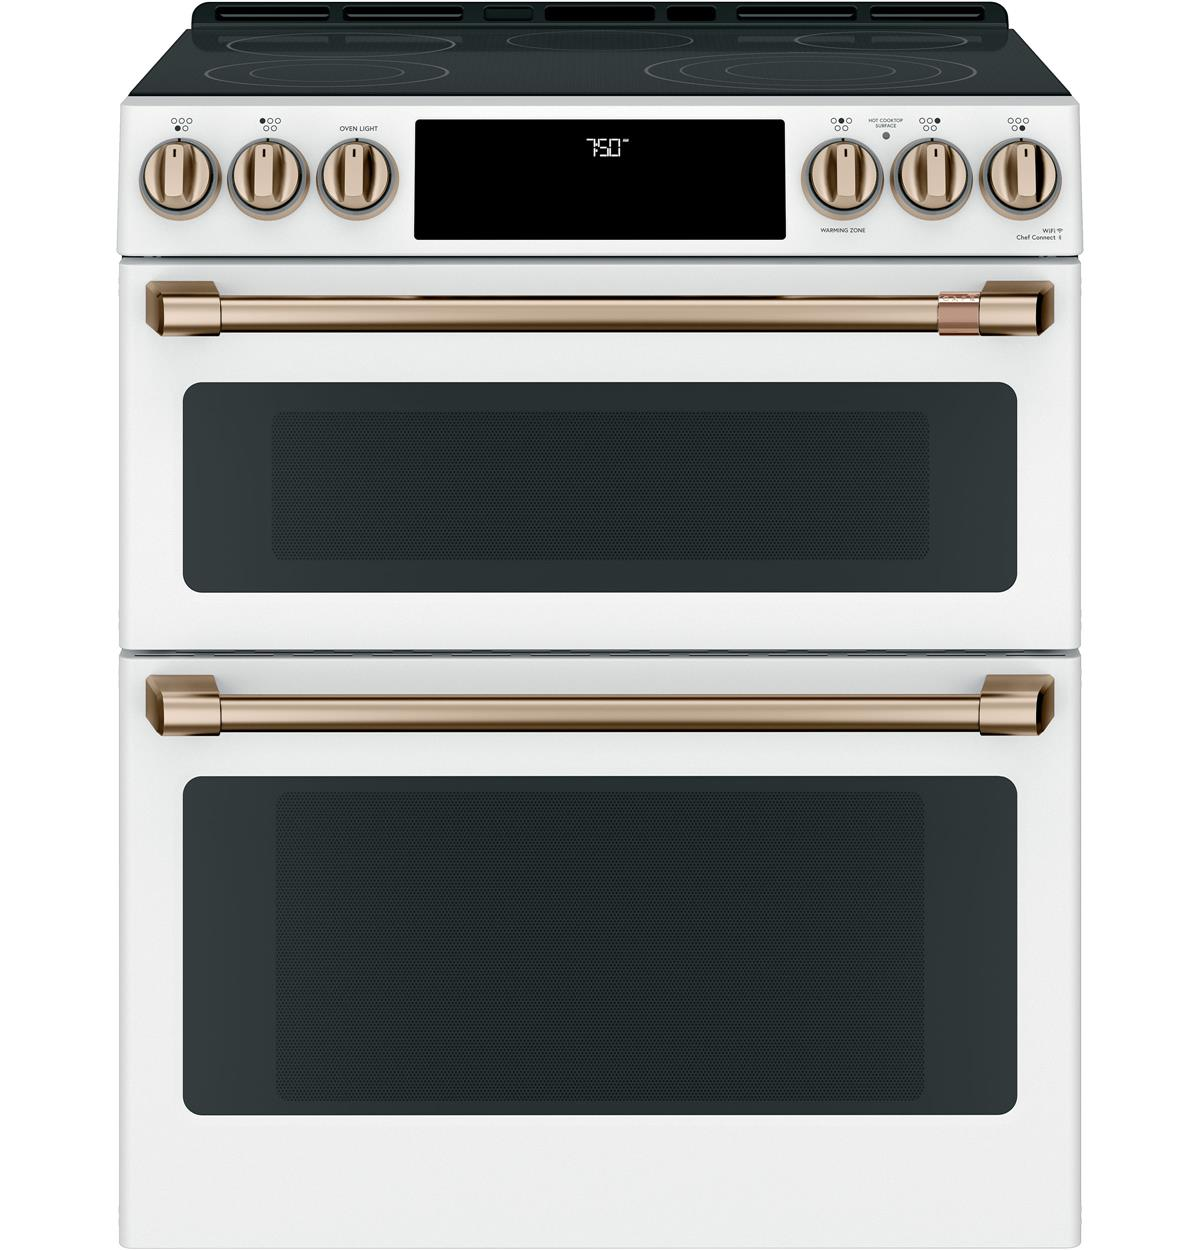 Ranges, Customizable Cooking Appliances for your Kitchen | Café on fireplaces for mobile homes, appliances for mobile homes, doors for mobile homes, furnaces for mobile homes, heaters for mobile homes, refrigerators for mobile homes, cabinets for mobile homes, walls for mobile homes, clothes dryers for mobile homes, pellet stoves for mobile homes, tables for mobile homes, showers for mobile homes, ventilation for mobile homes, heating for mobile homes, filters for mobile homes, wood stoves for mobile homes, baths for mobile homes, generators for mobile homes, windows for mobile homes, dishwashers for mobile homes,